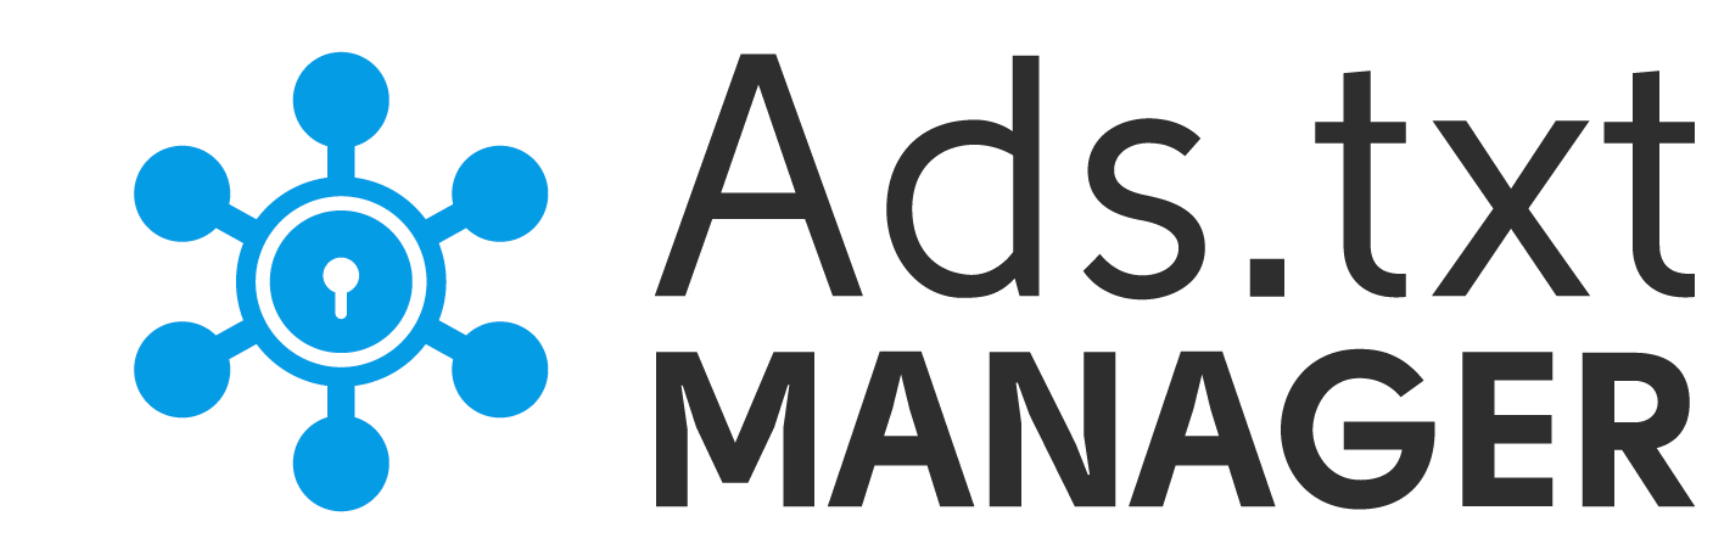 The Ads.txt Manager plugin.